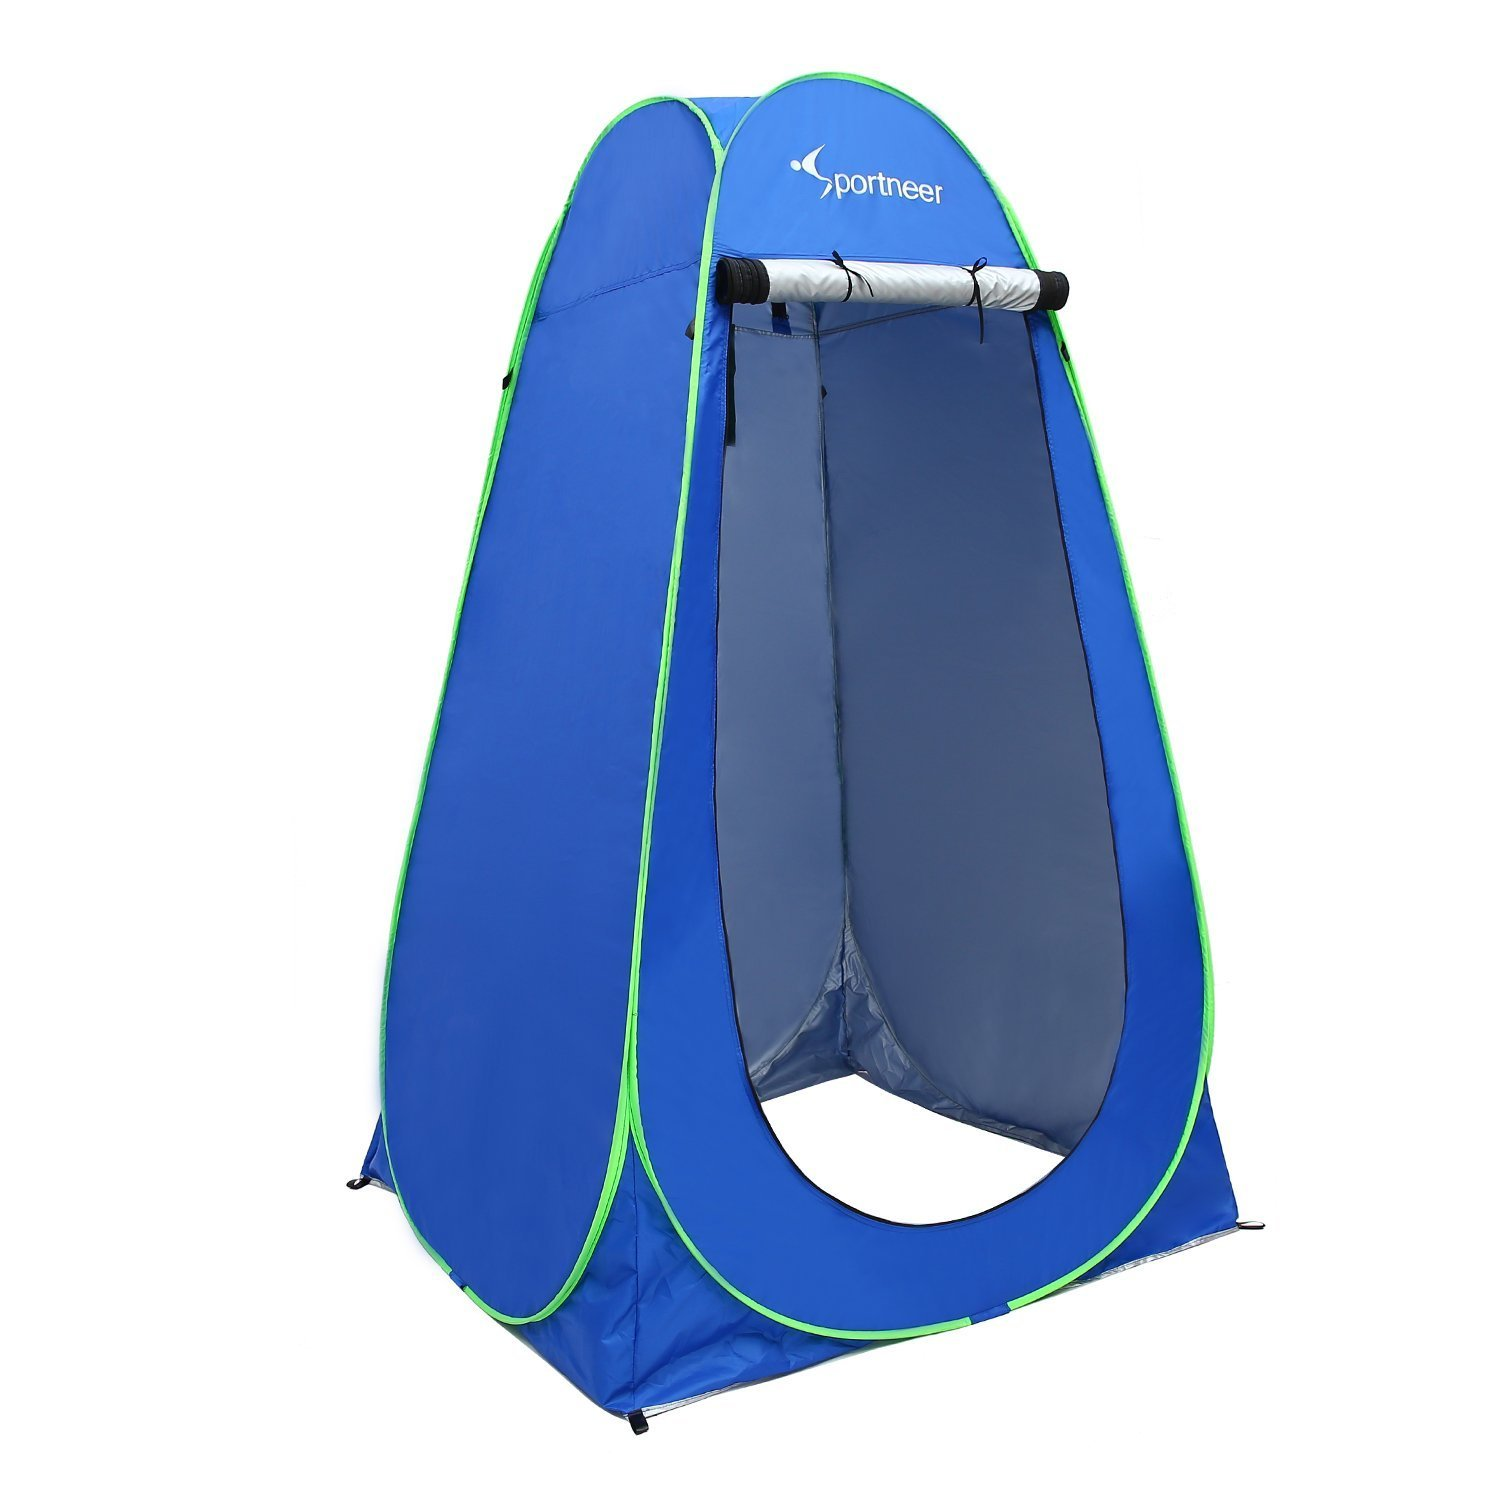 Sportneer Pop Up Camping Shower Tent, Portable Dressing Changing Room Privacy Shelter Tents for Outdoor Camping Beach Toilet and Indoor Photo Shoot with Carrying Bag, 6.25 ft Tall (Blue) by Sportneer